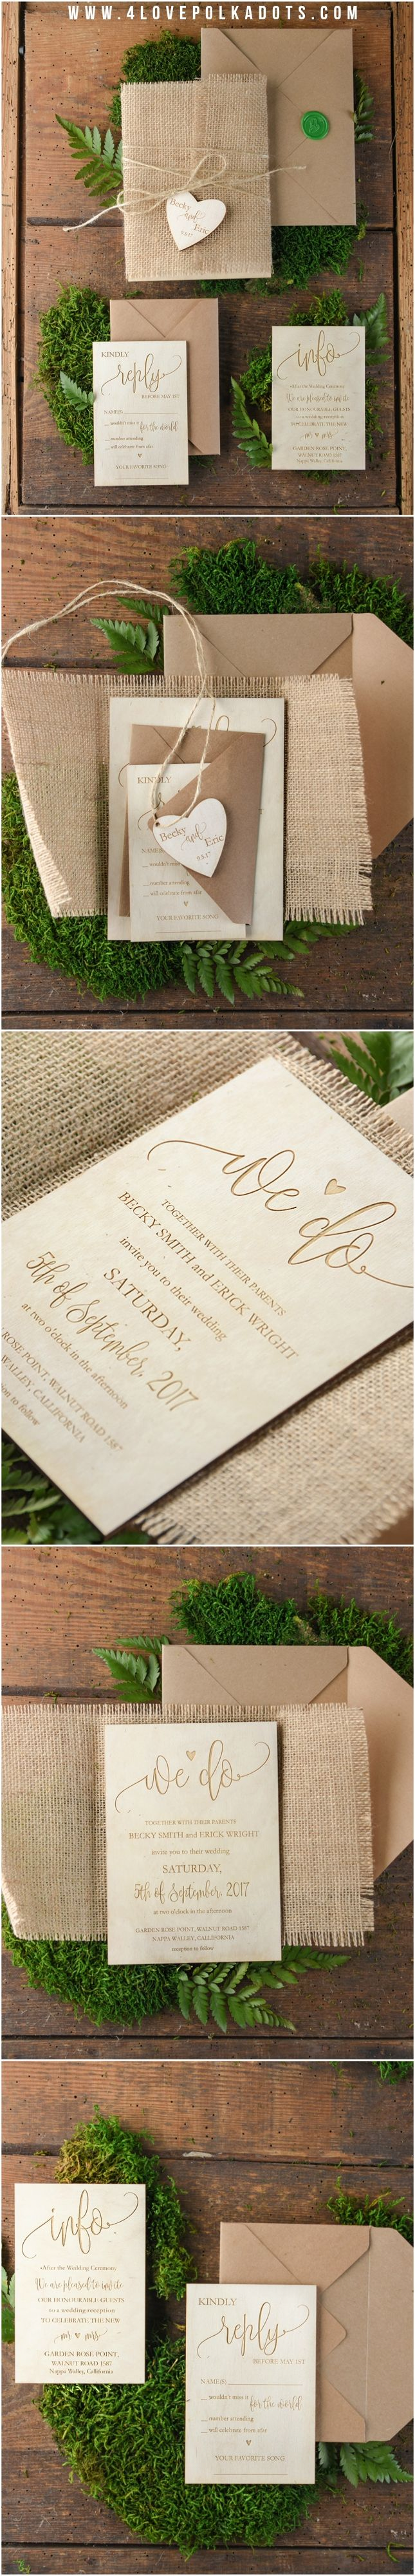 80 Best Wedding Invitations Images On Pinterest Bridal Invitations